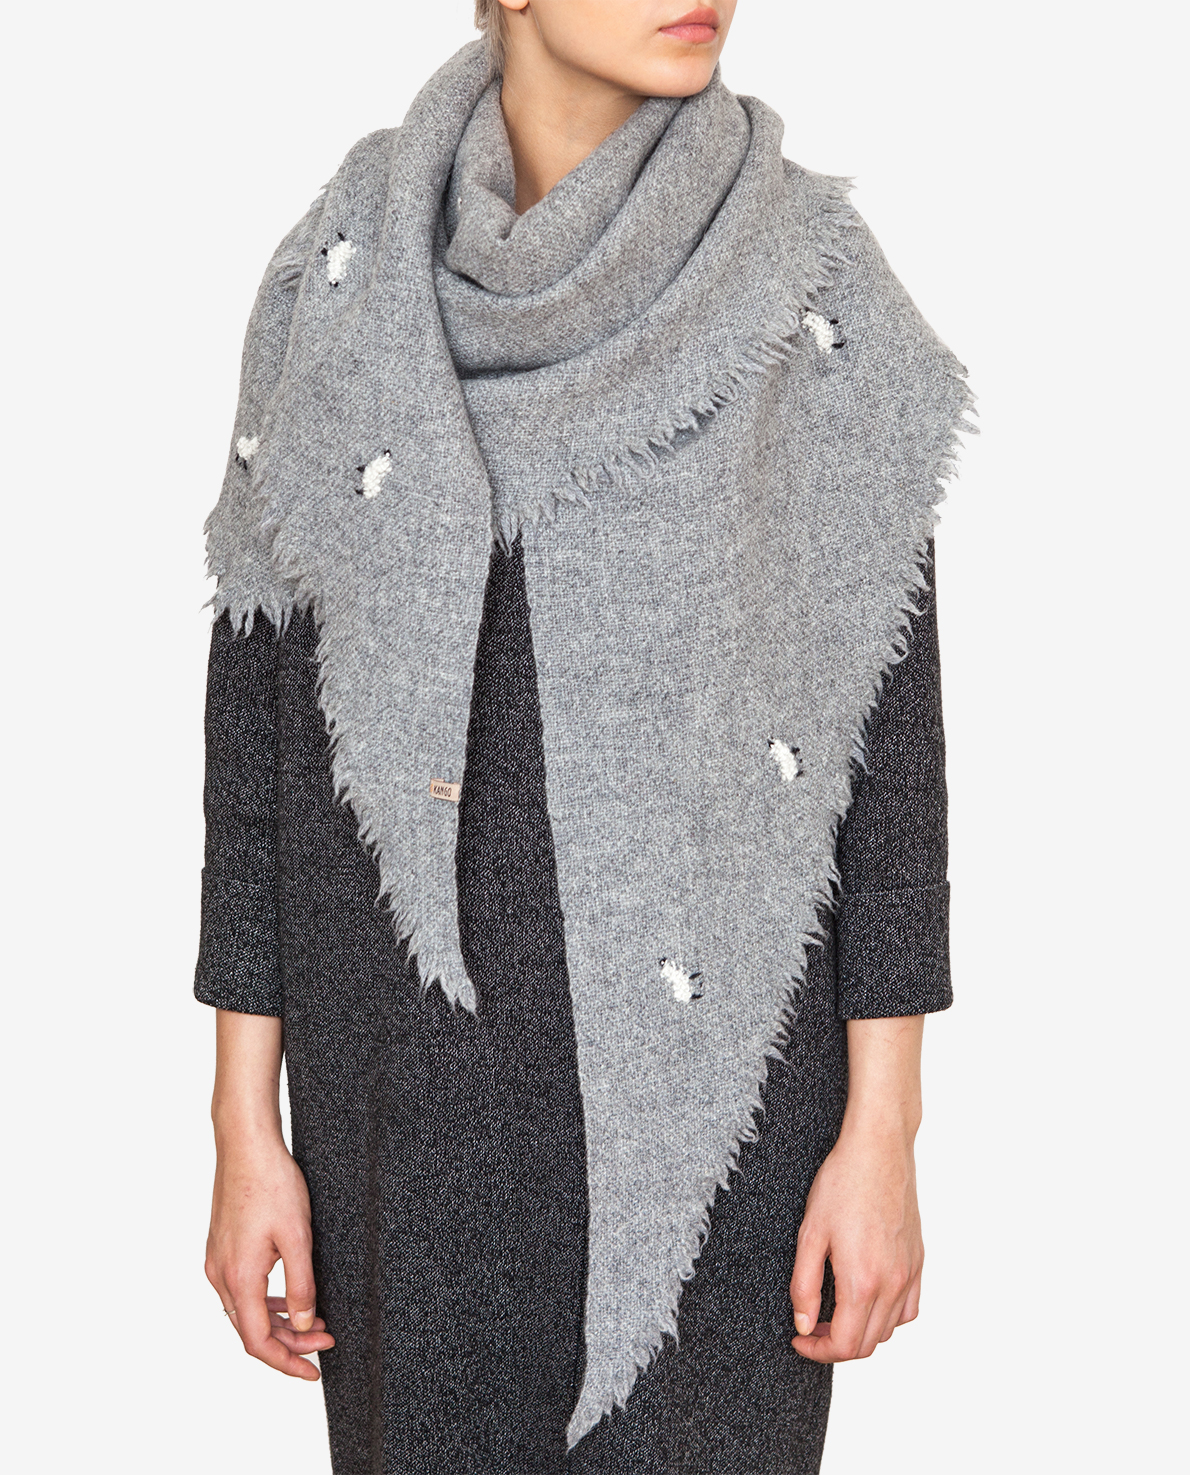 Shawl with white sheep